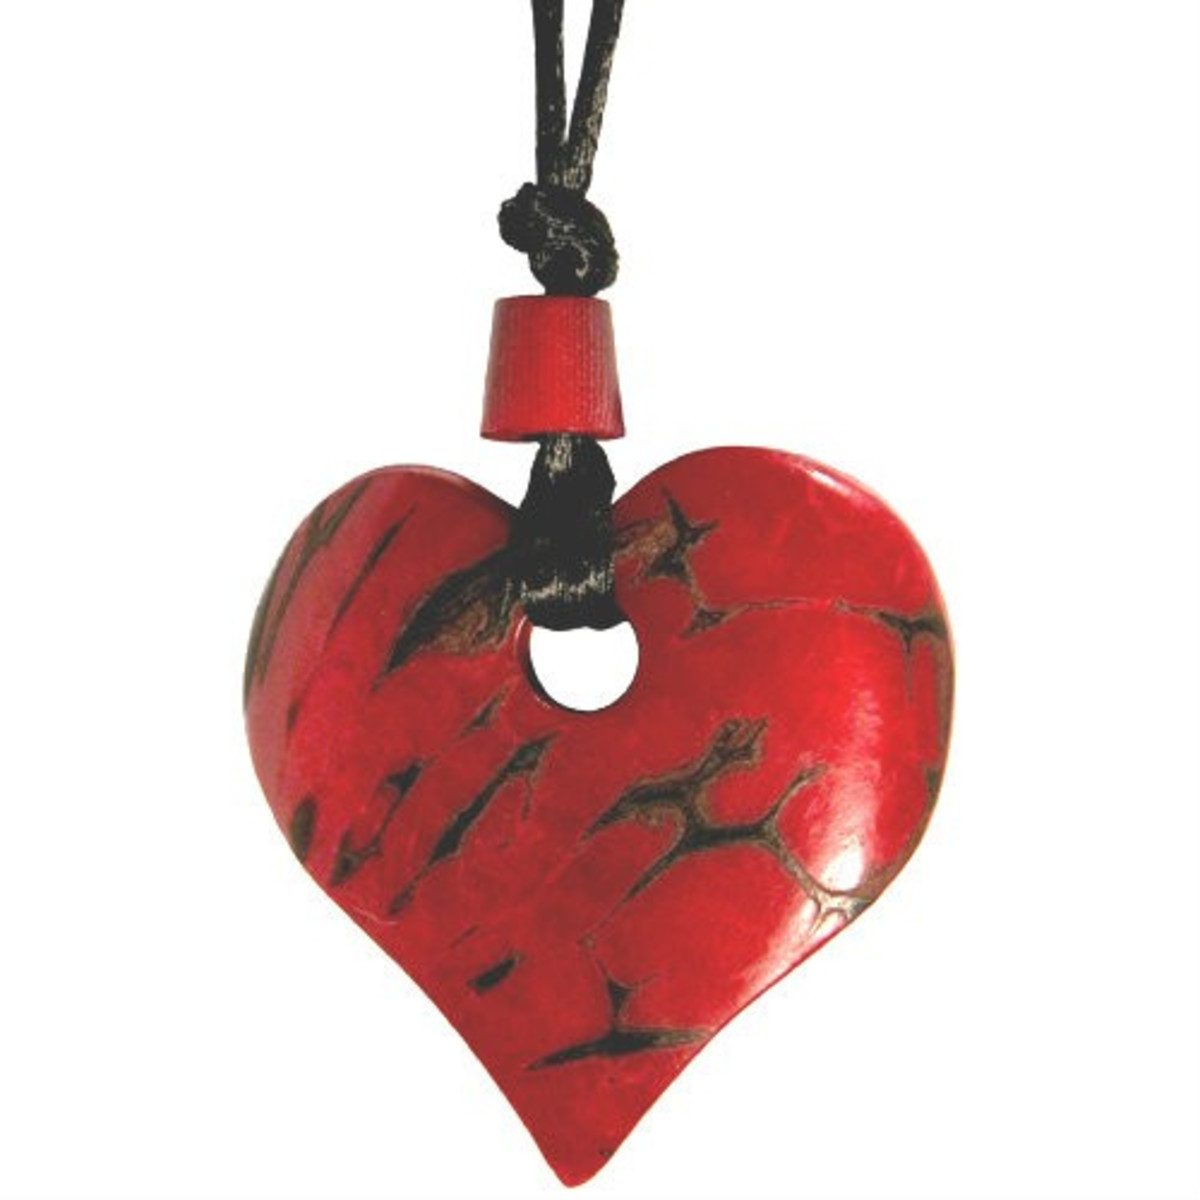 Tagua nuts are made into a range of beads and pendants that can be bought from bead retailers.